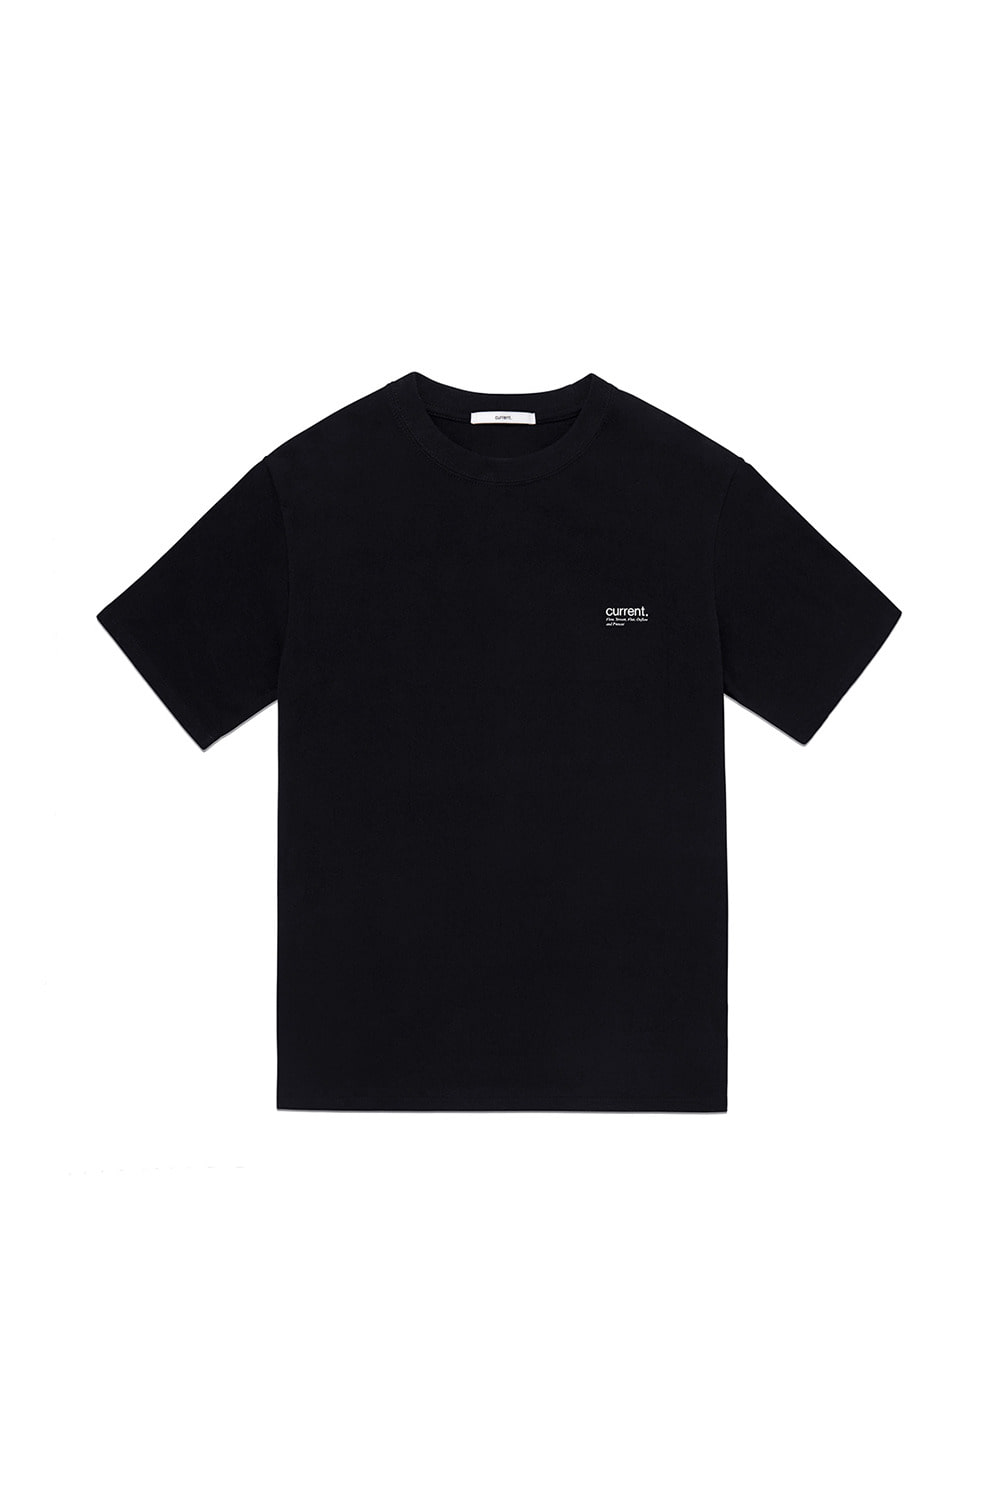 CURRENT LOGO TEE MAN [BLACK]